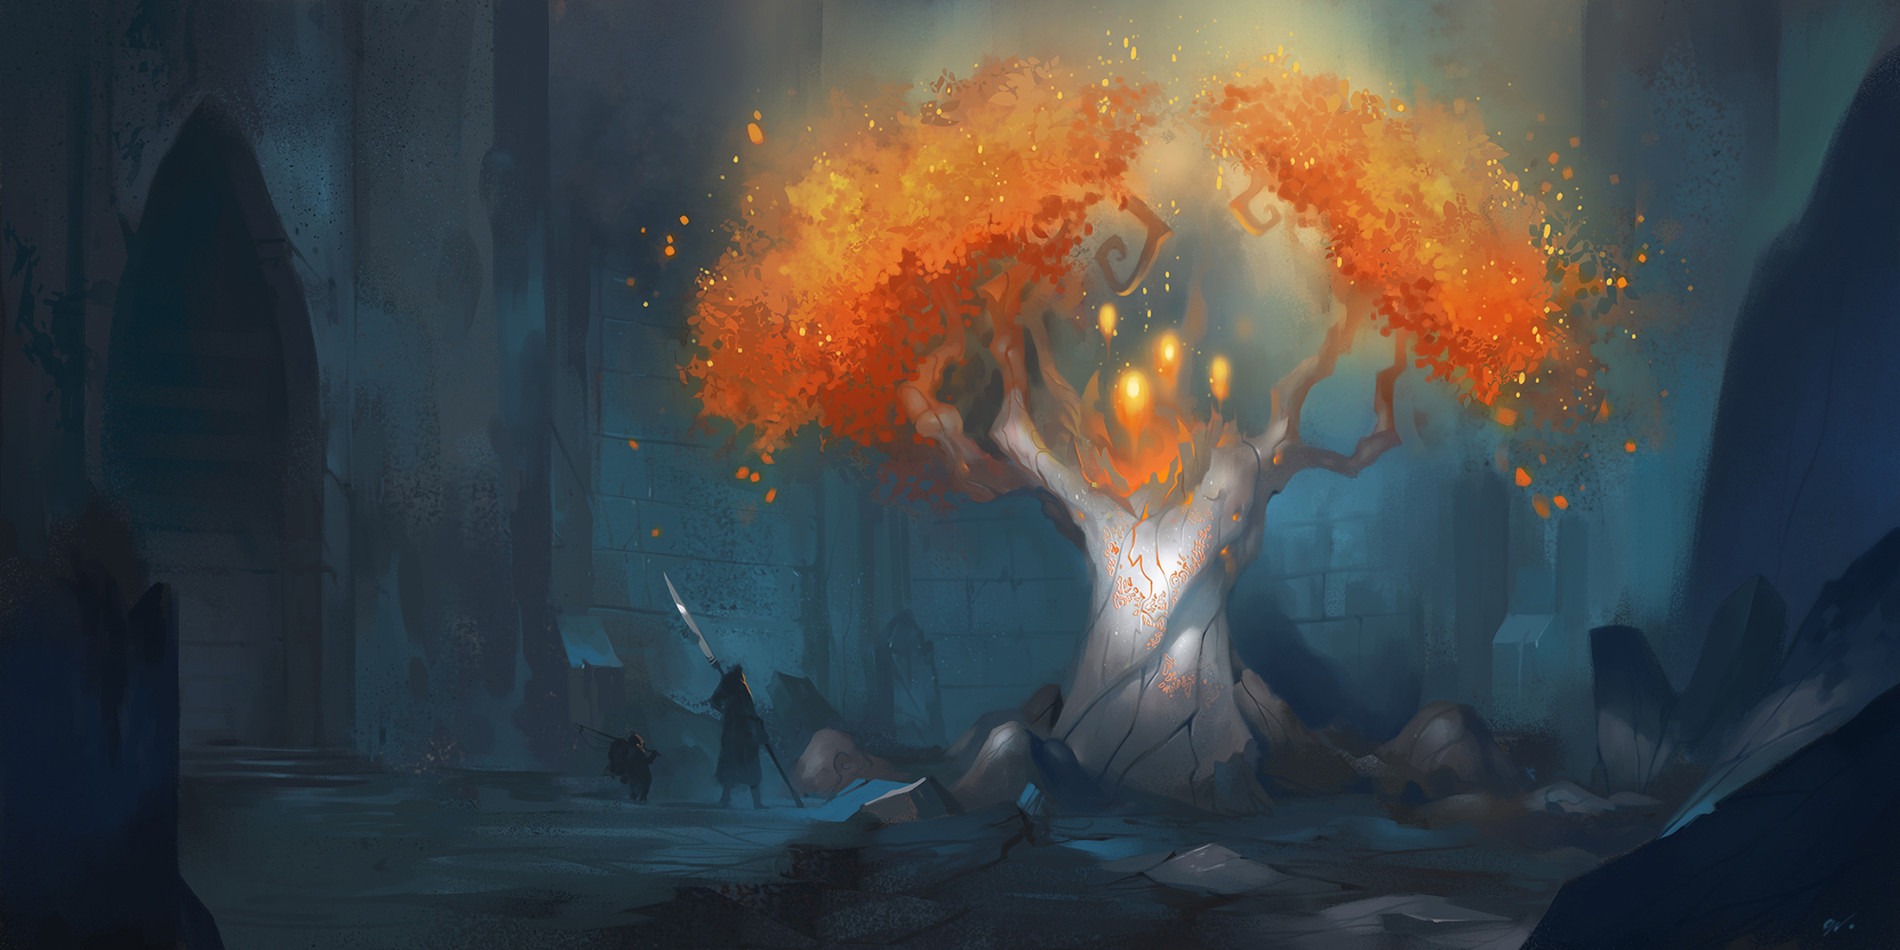 Dave Greco Digital Painting Crowfall The tree of life